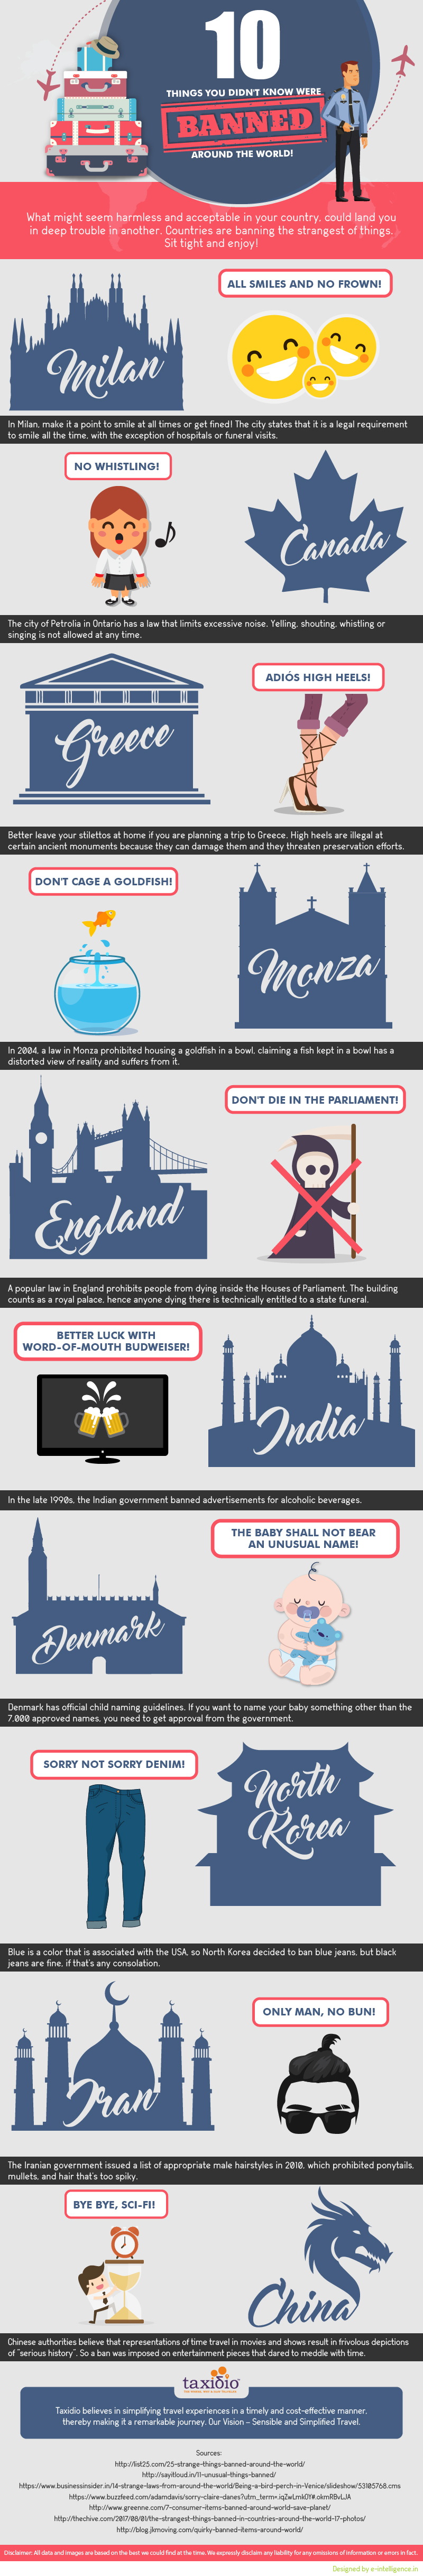 10 of the Weirdest Bans Around the World - Infographic